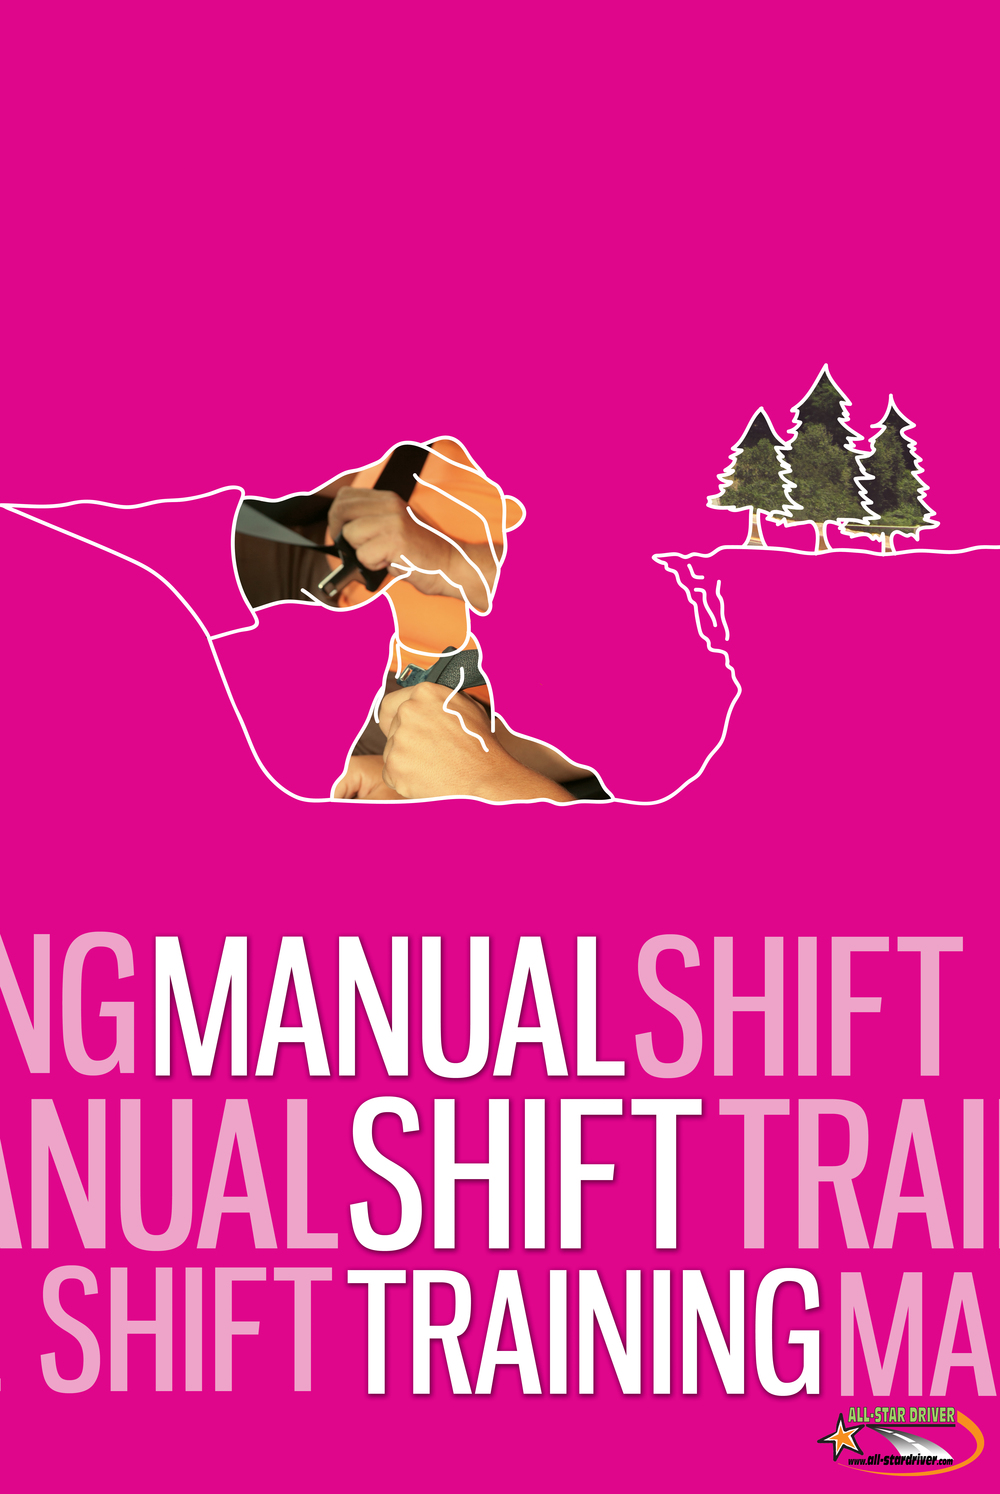 ASD Poster Manual Shift Training.jpg